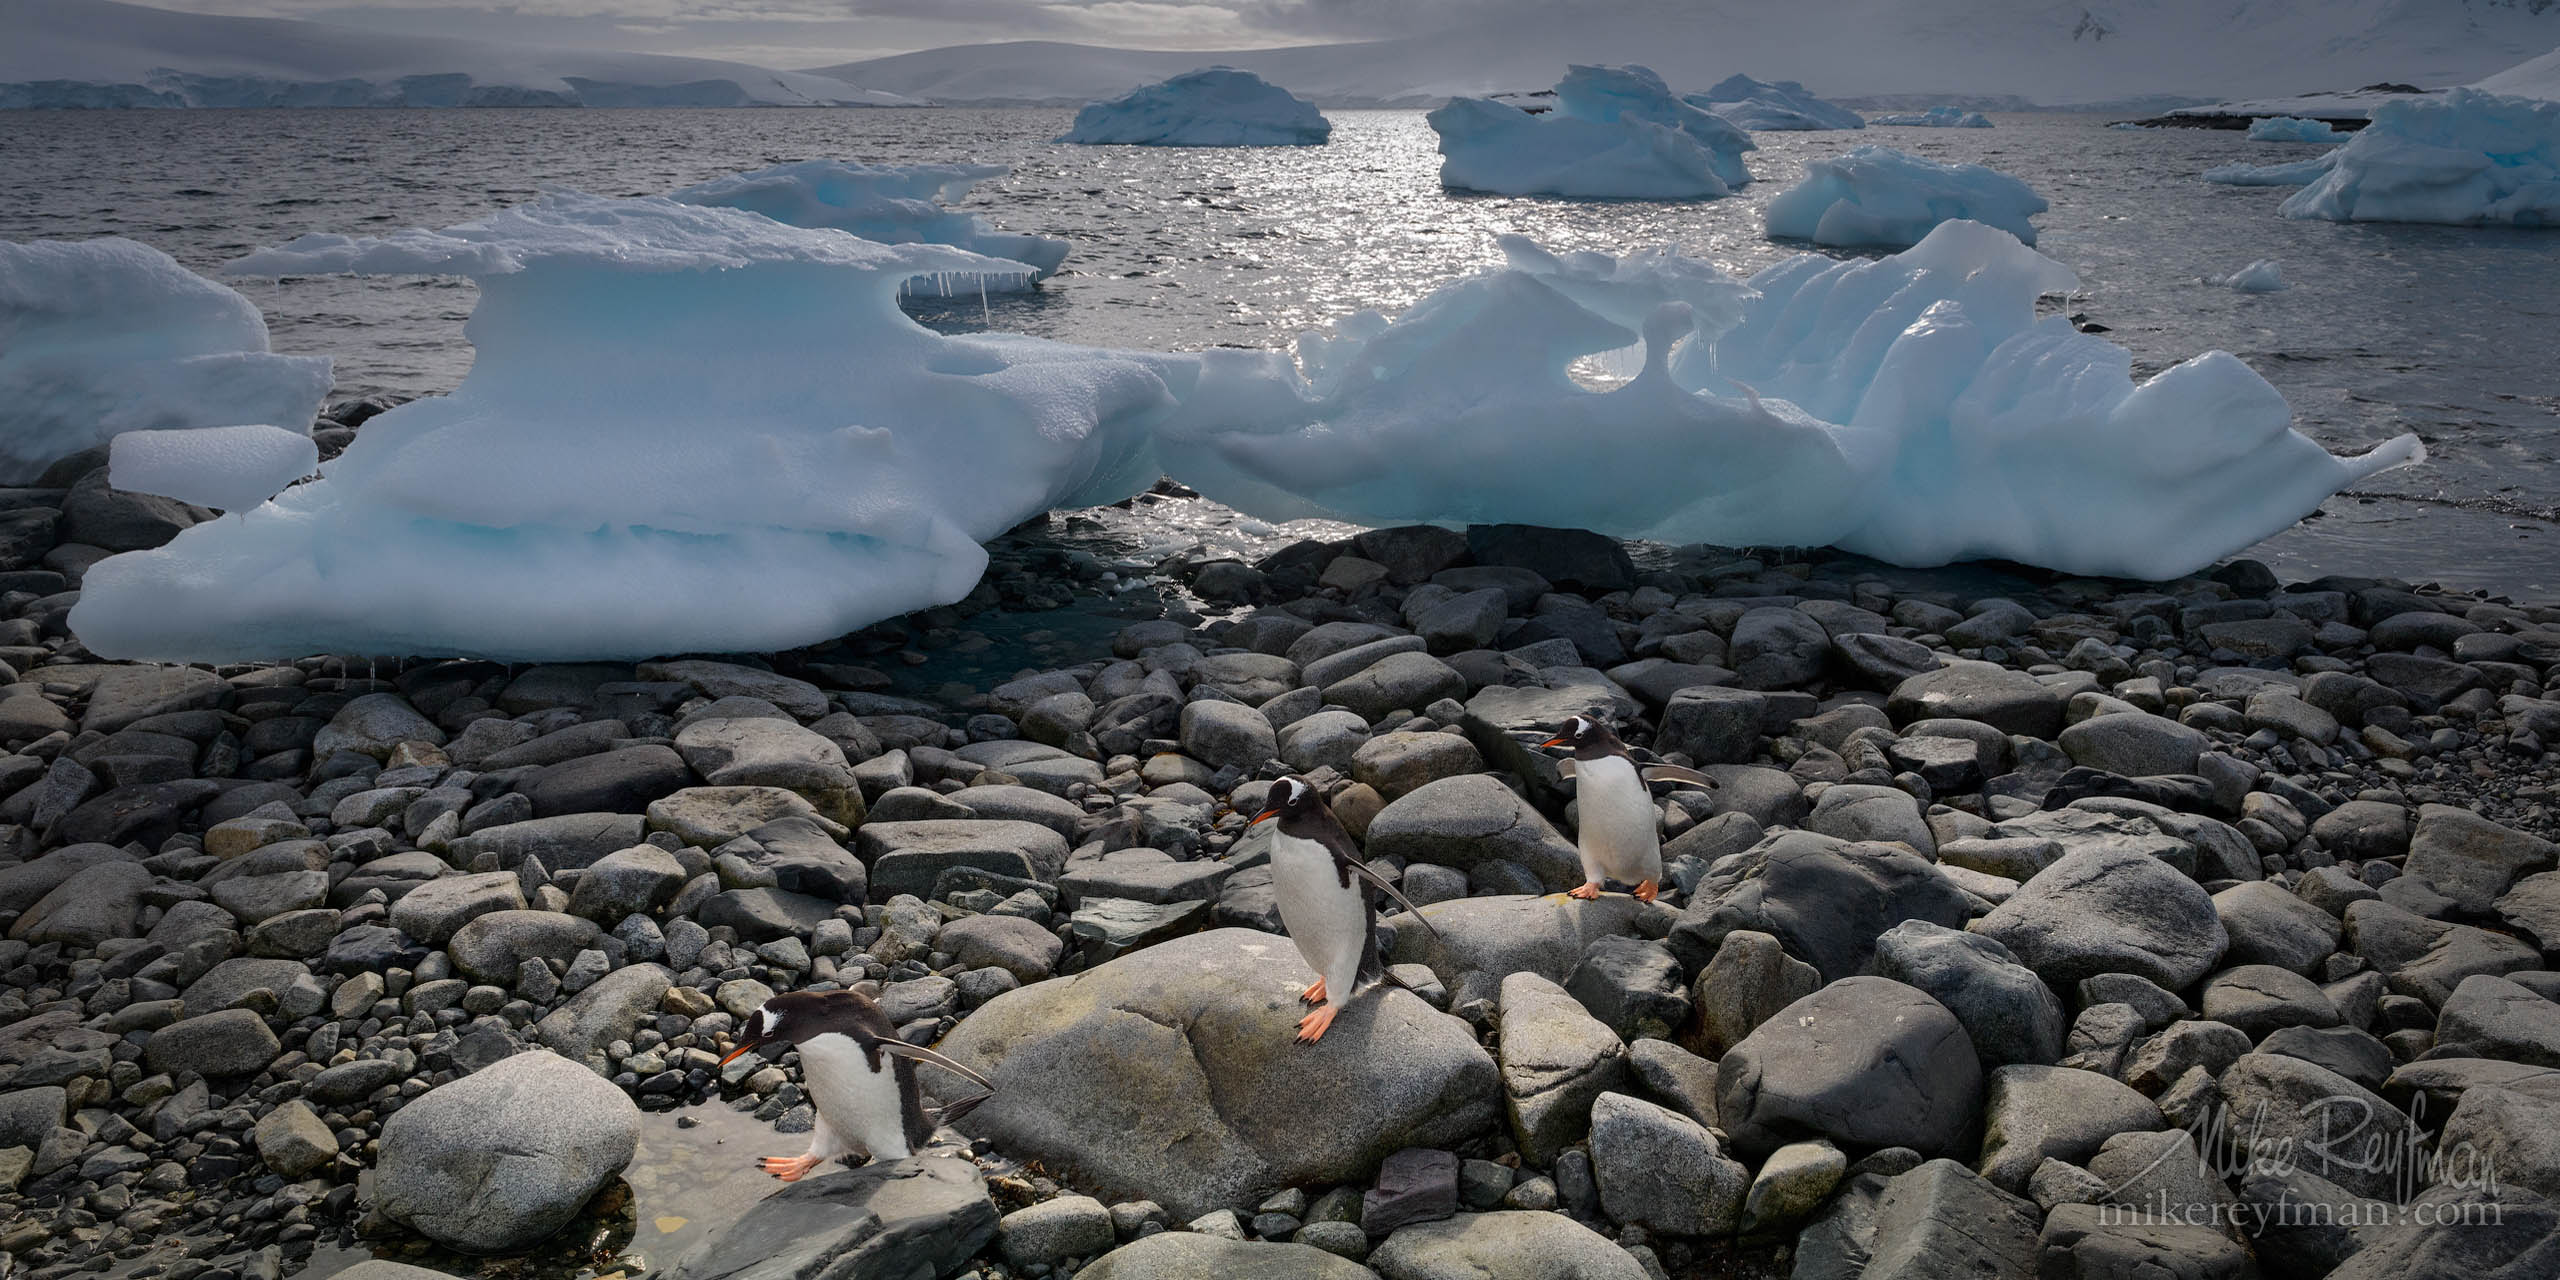 Gentoo Penguin walking ashore after foraging at sea. Port Lockroy Harbor, Wiencke Island, Palmer Archipelago, Antarctic P12-MRD8D7179-75-81 - Selected panoramic images with 2:1 aspect ratio - Mike Reyfman Photography